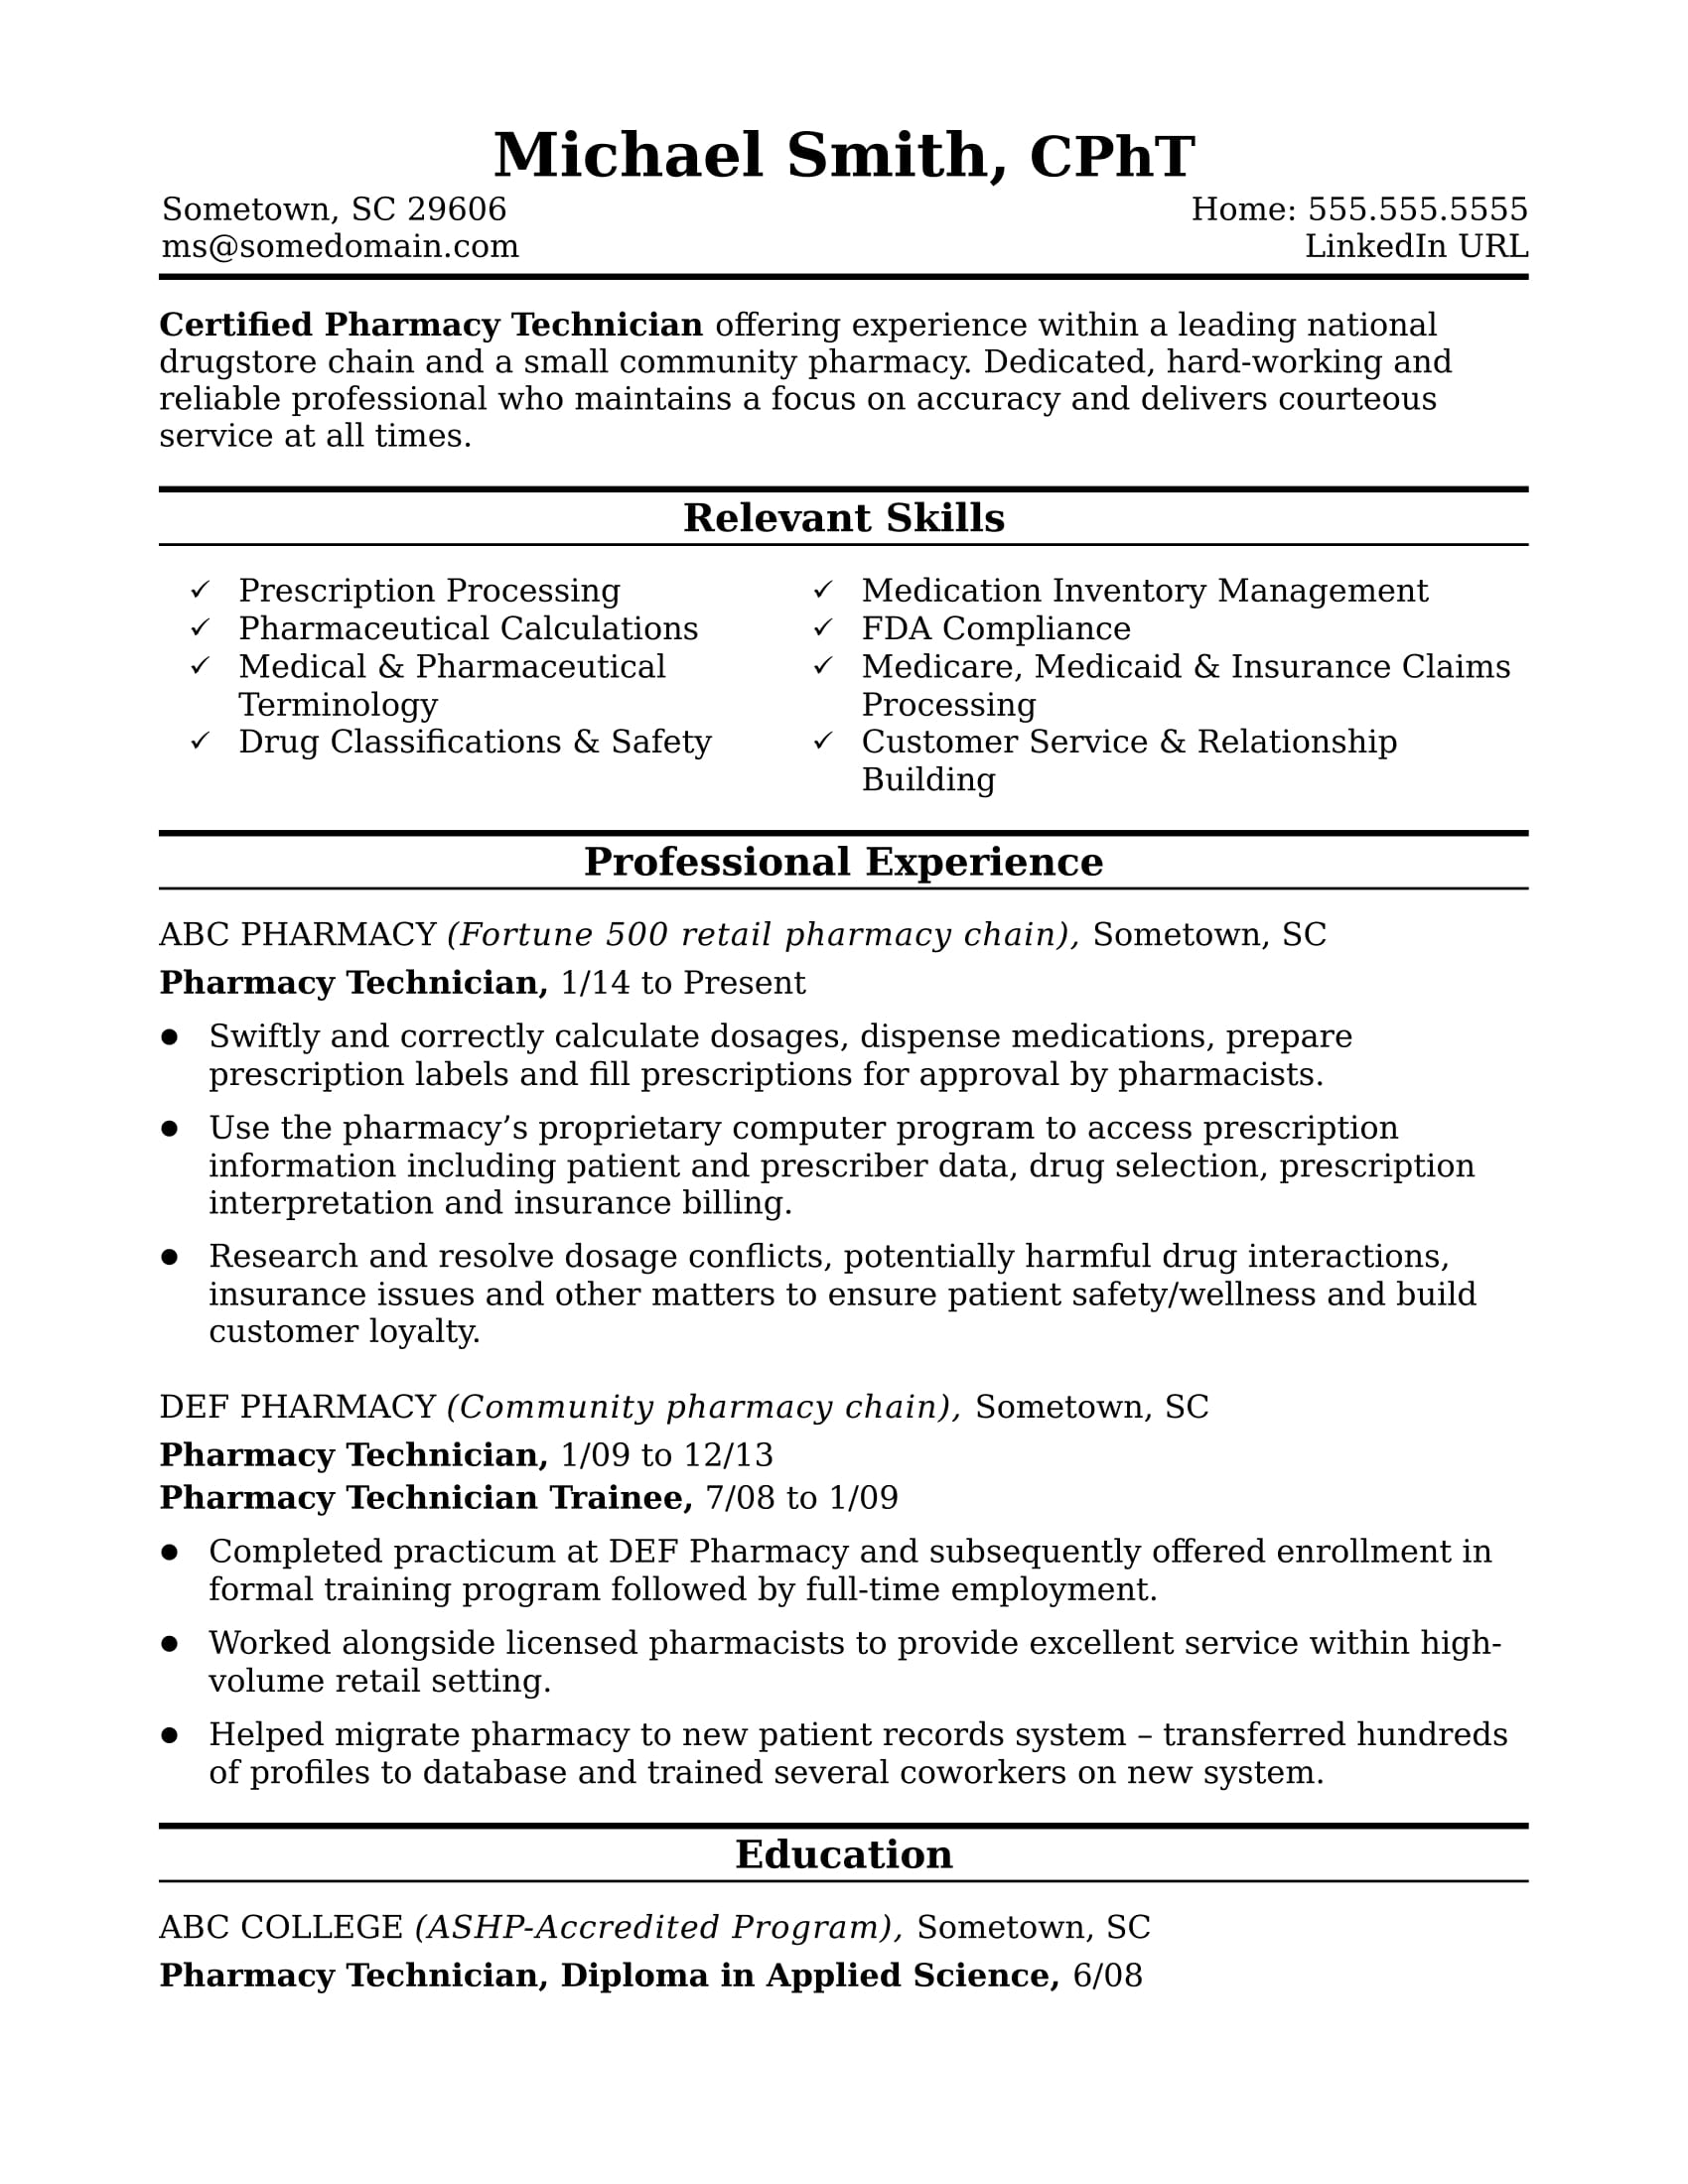 High Quality Sample Resume For A Pharmacy Technician To Pharmacy Tech Resume Samples